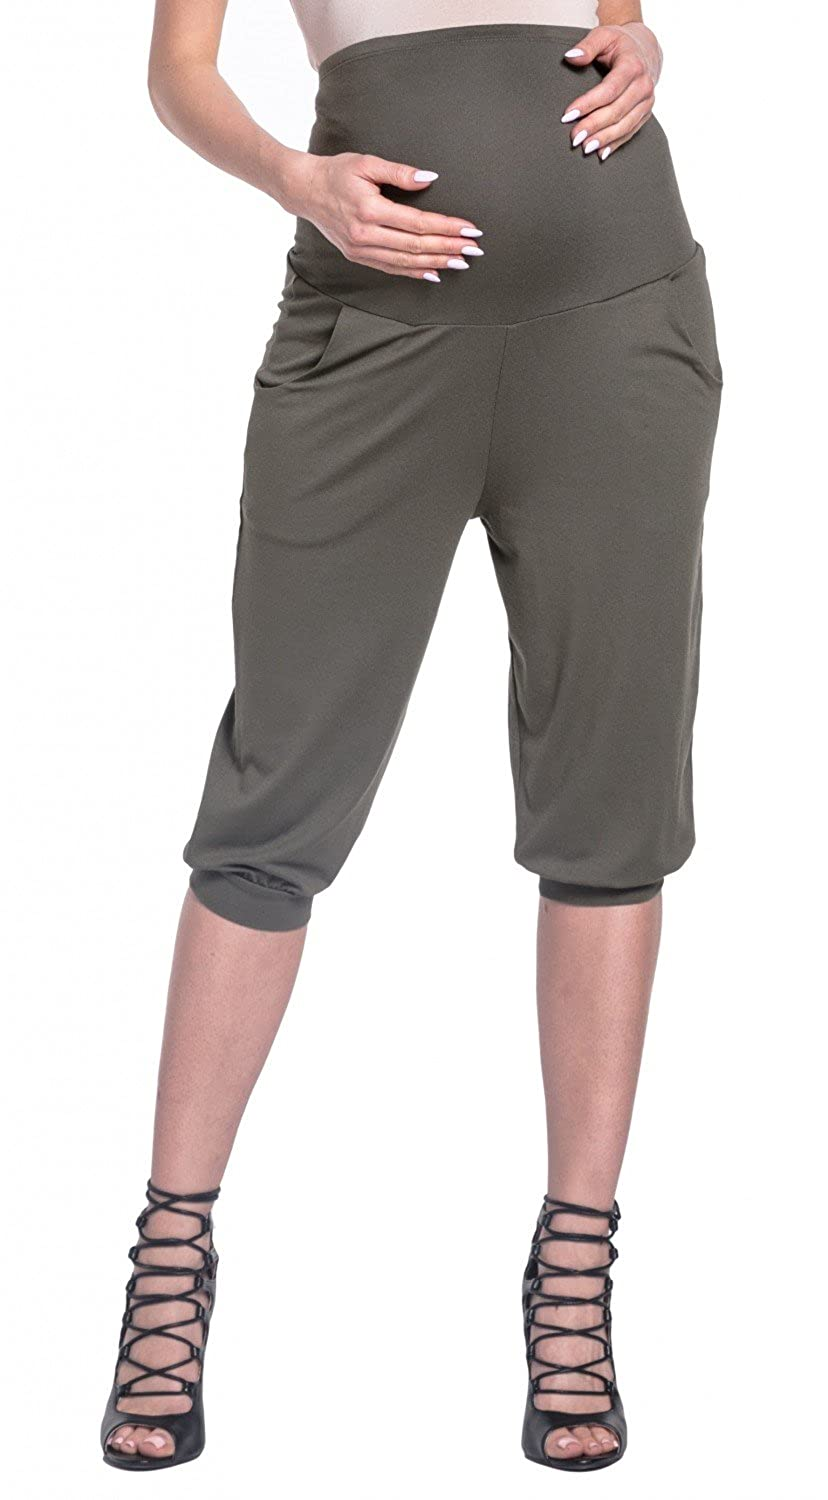 Happy Mama. Womens Elastic Maternity Capri Pants with Stretch Waistband. 665p pregpants_665